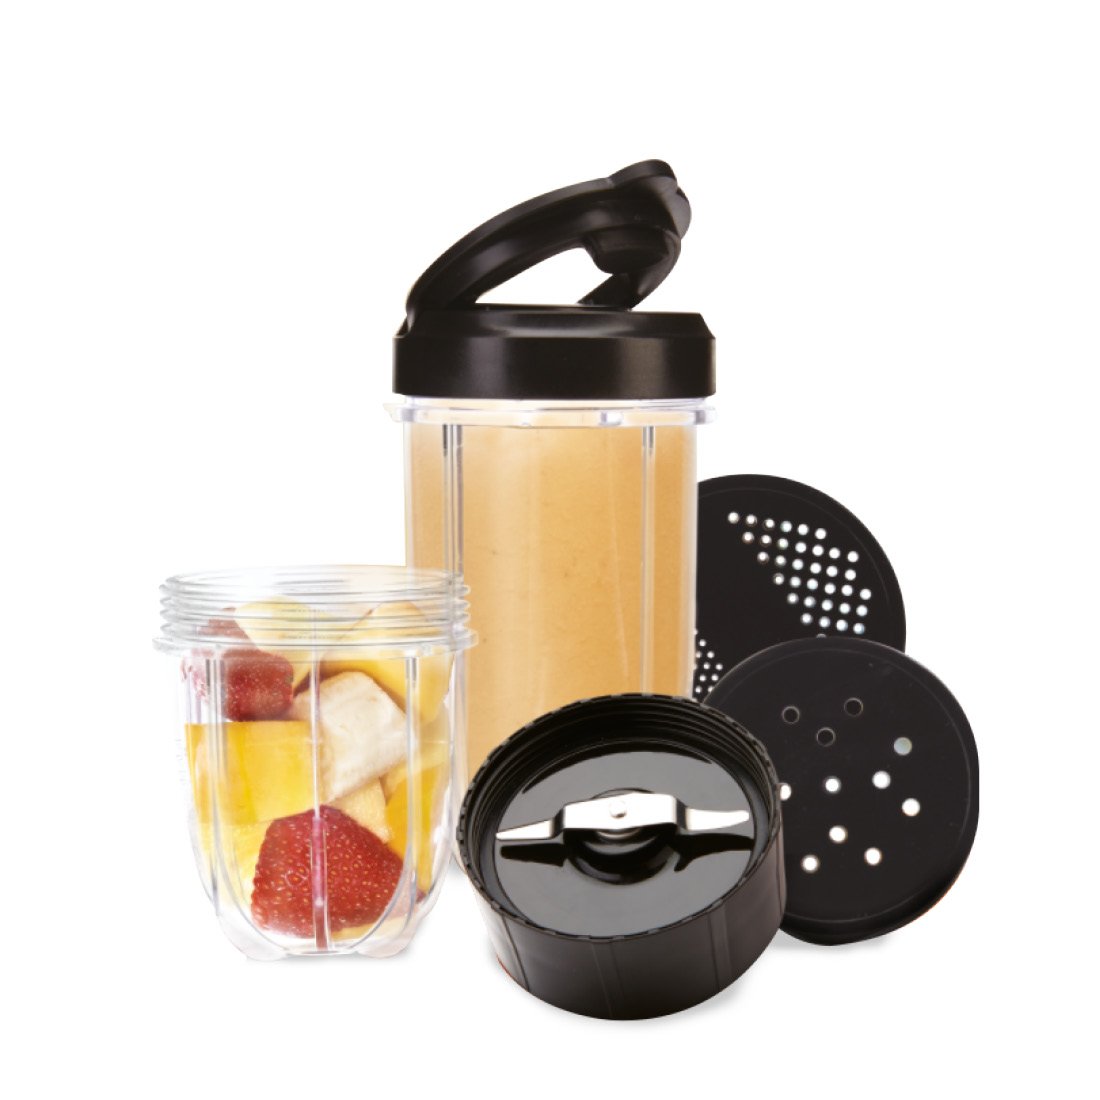 An image of Magic Bullet Accessory Kit